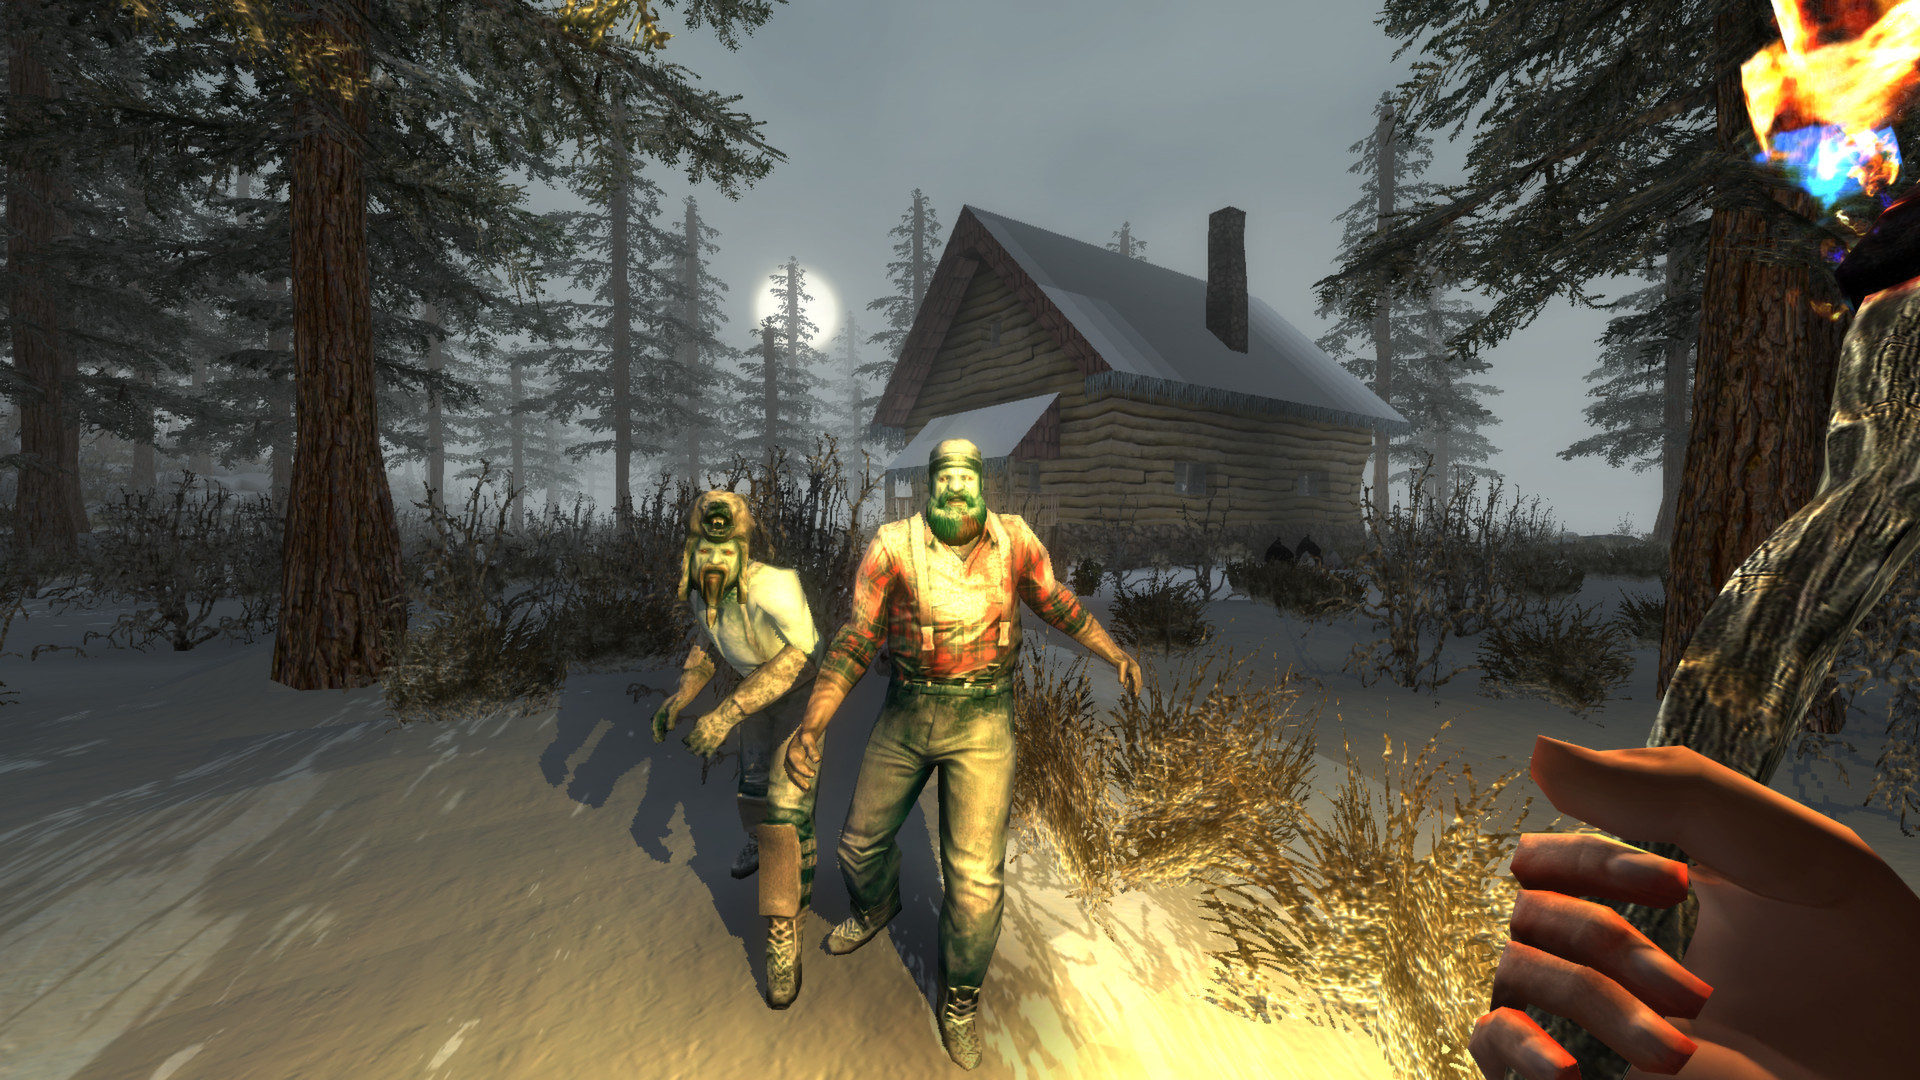 7 Days To Die Hd Wallpaper Background Image 1920x1080 Id